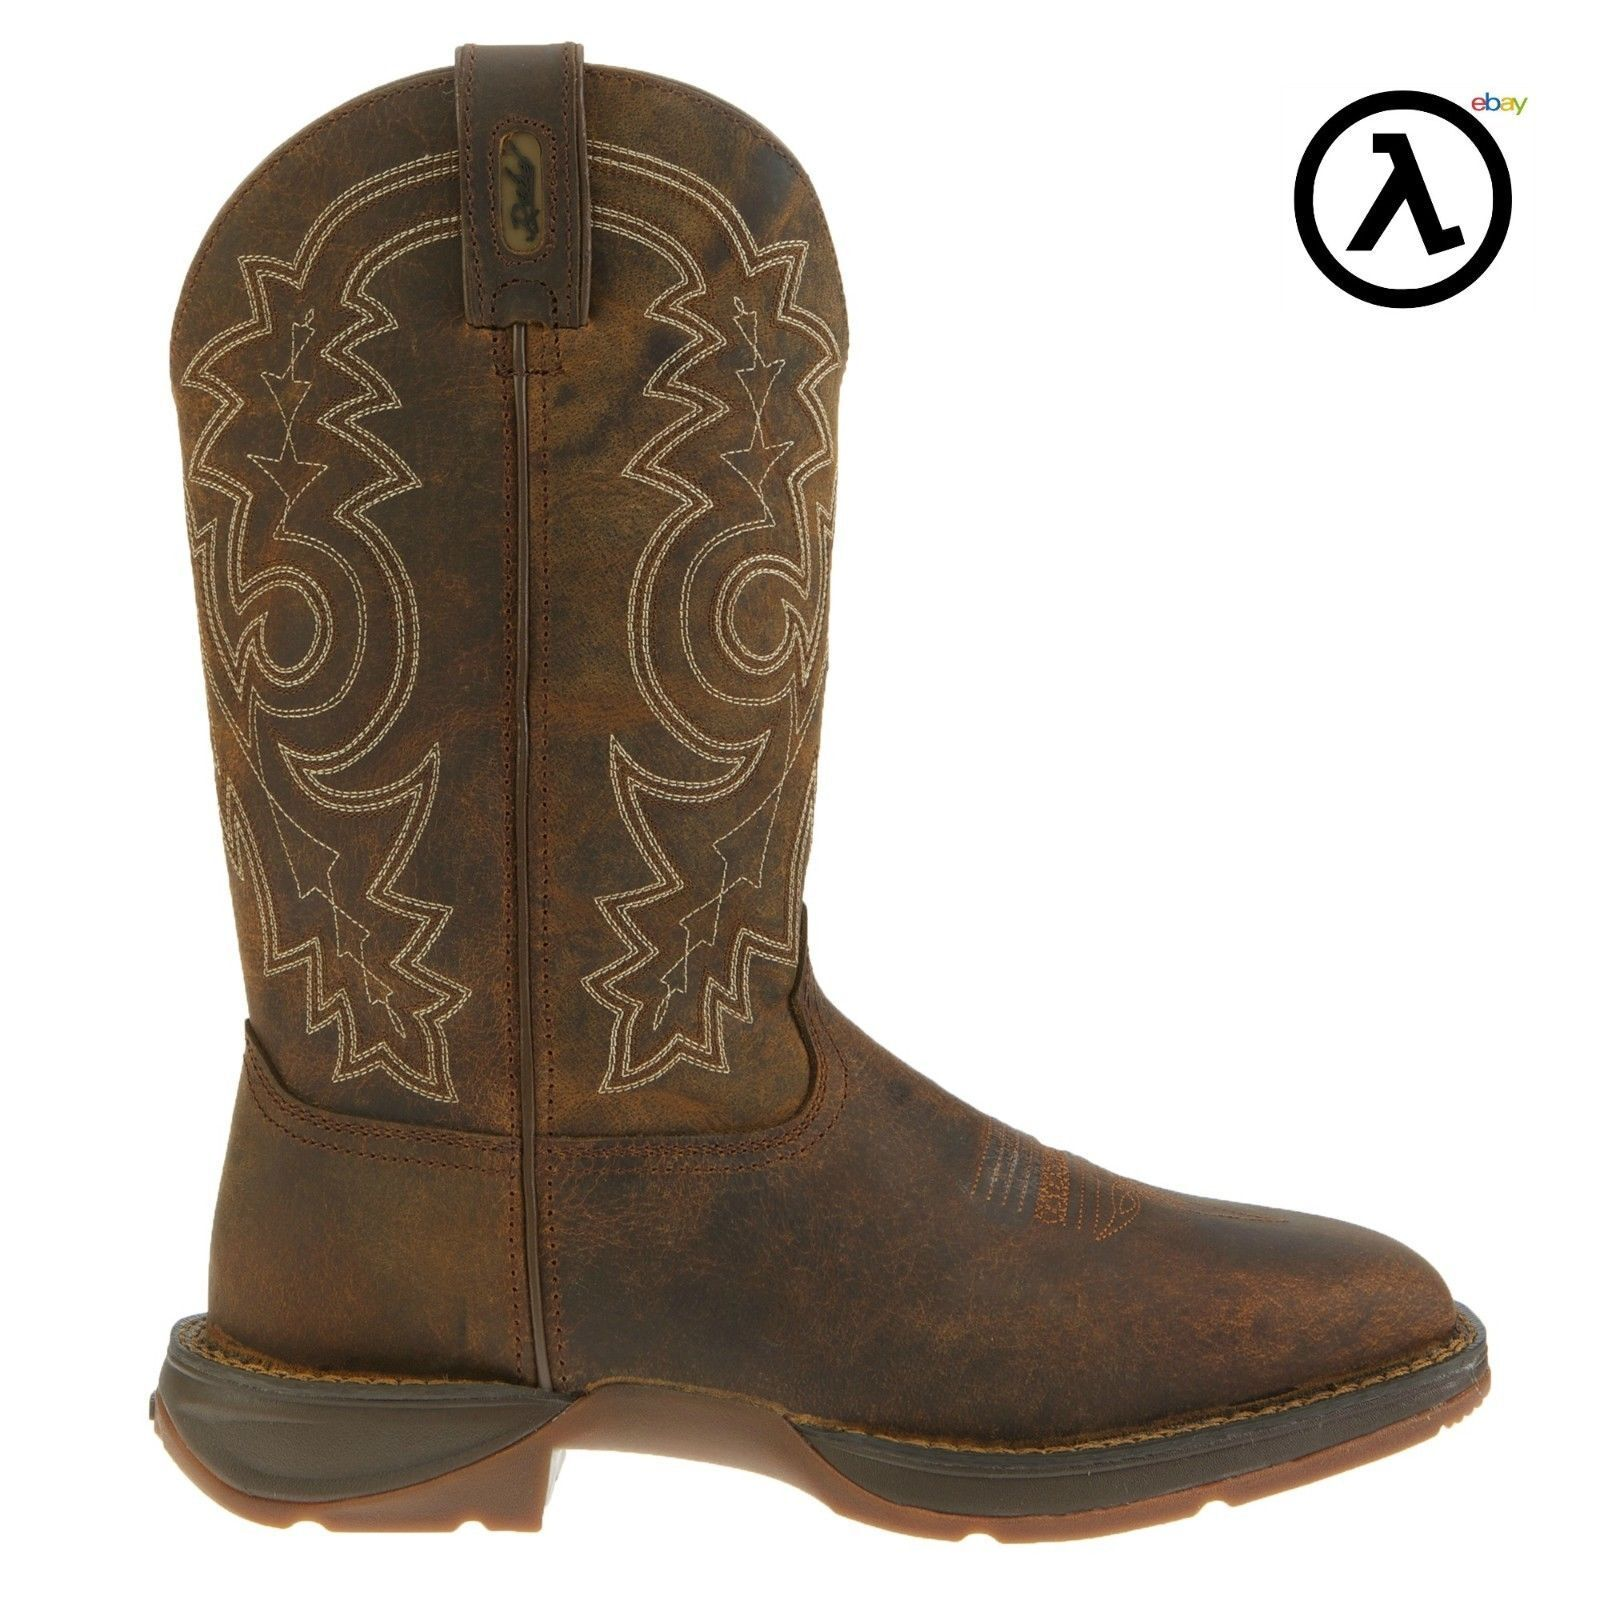 REBEL BY DURANGO STEEL TOE PULL-ON WESTERN BOOTS DB4343 * ALL SIZES - NEW